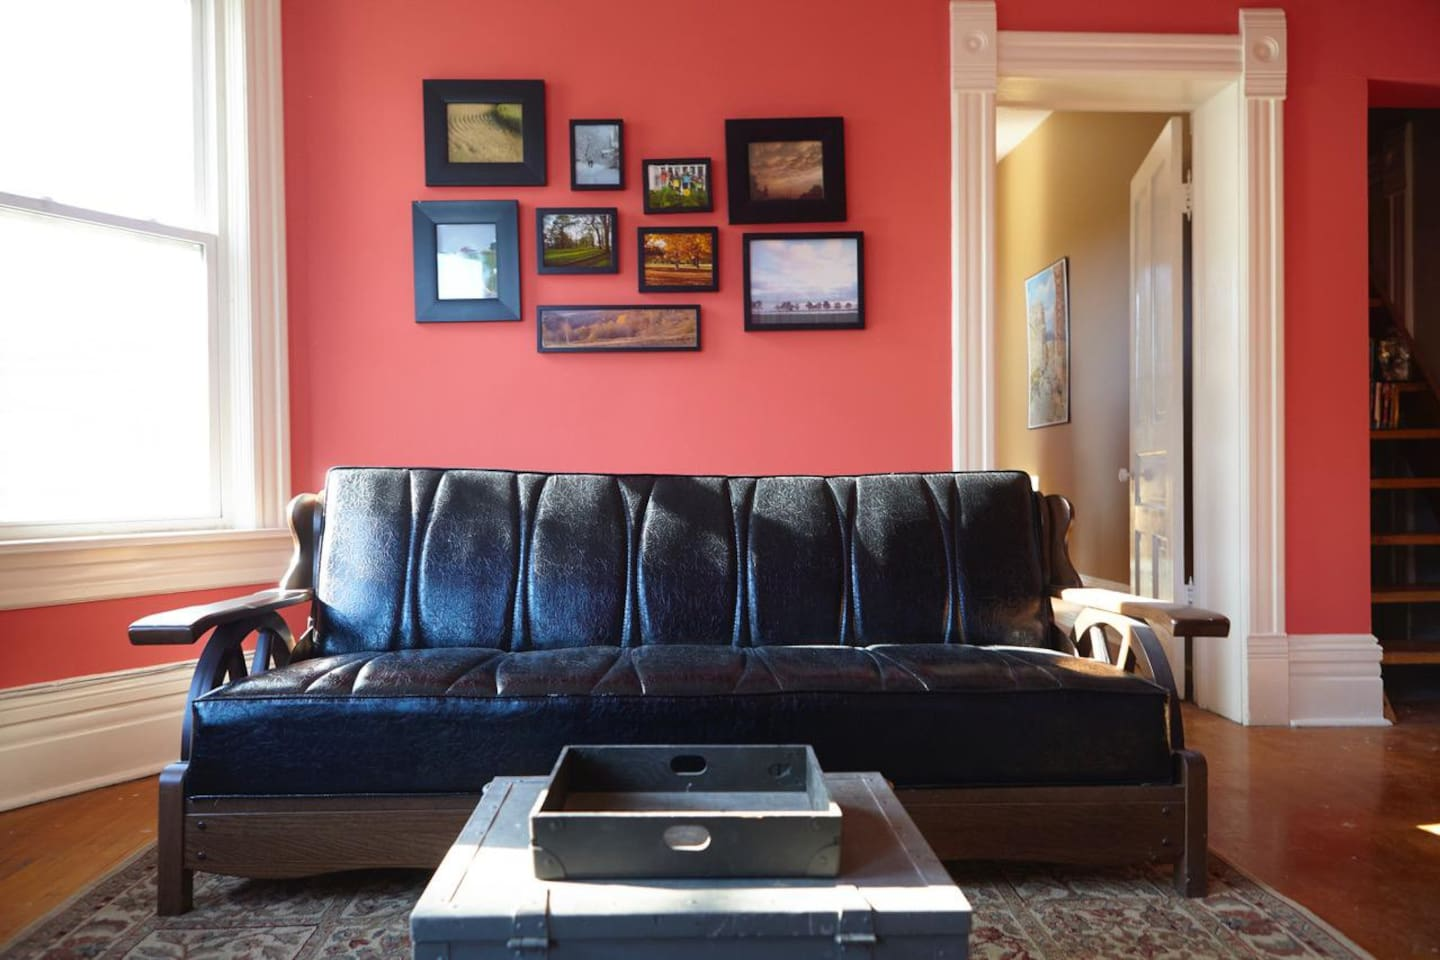 Kick up your heels on our retro couch or use as pull out for extra guests